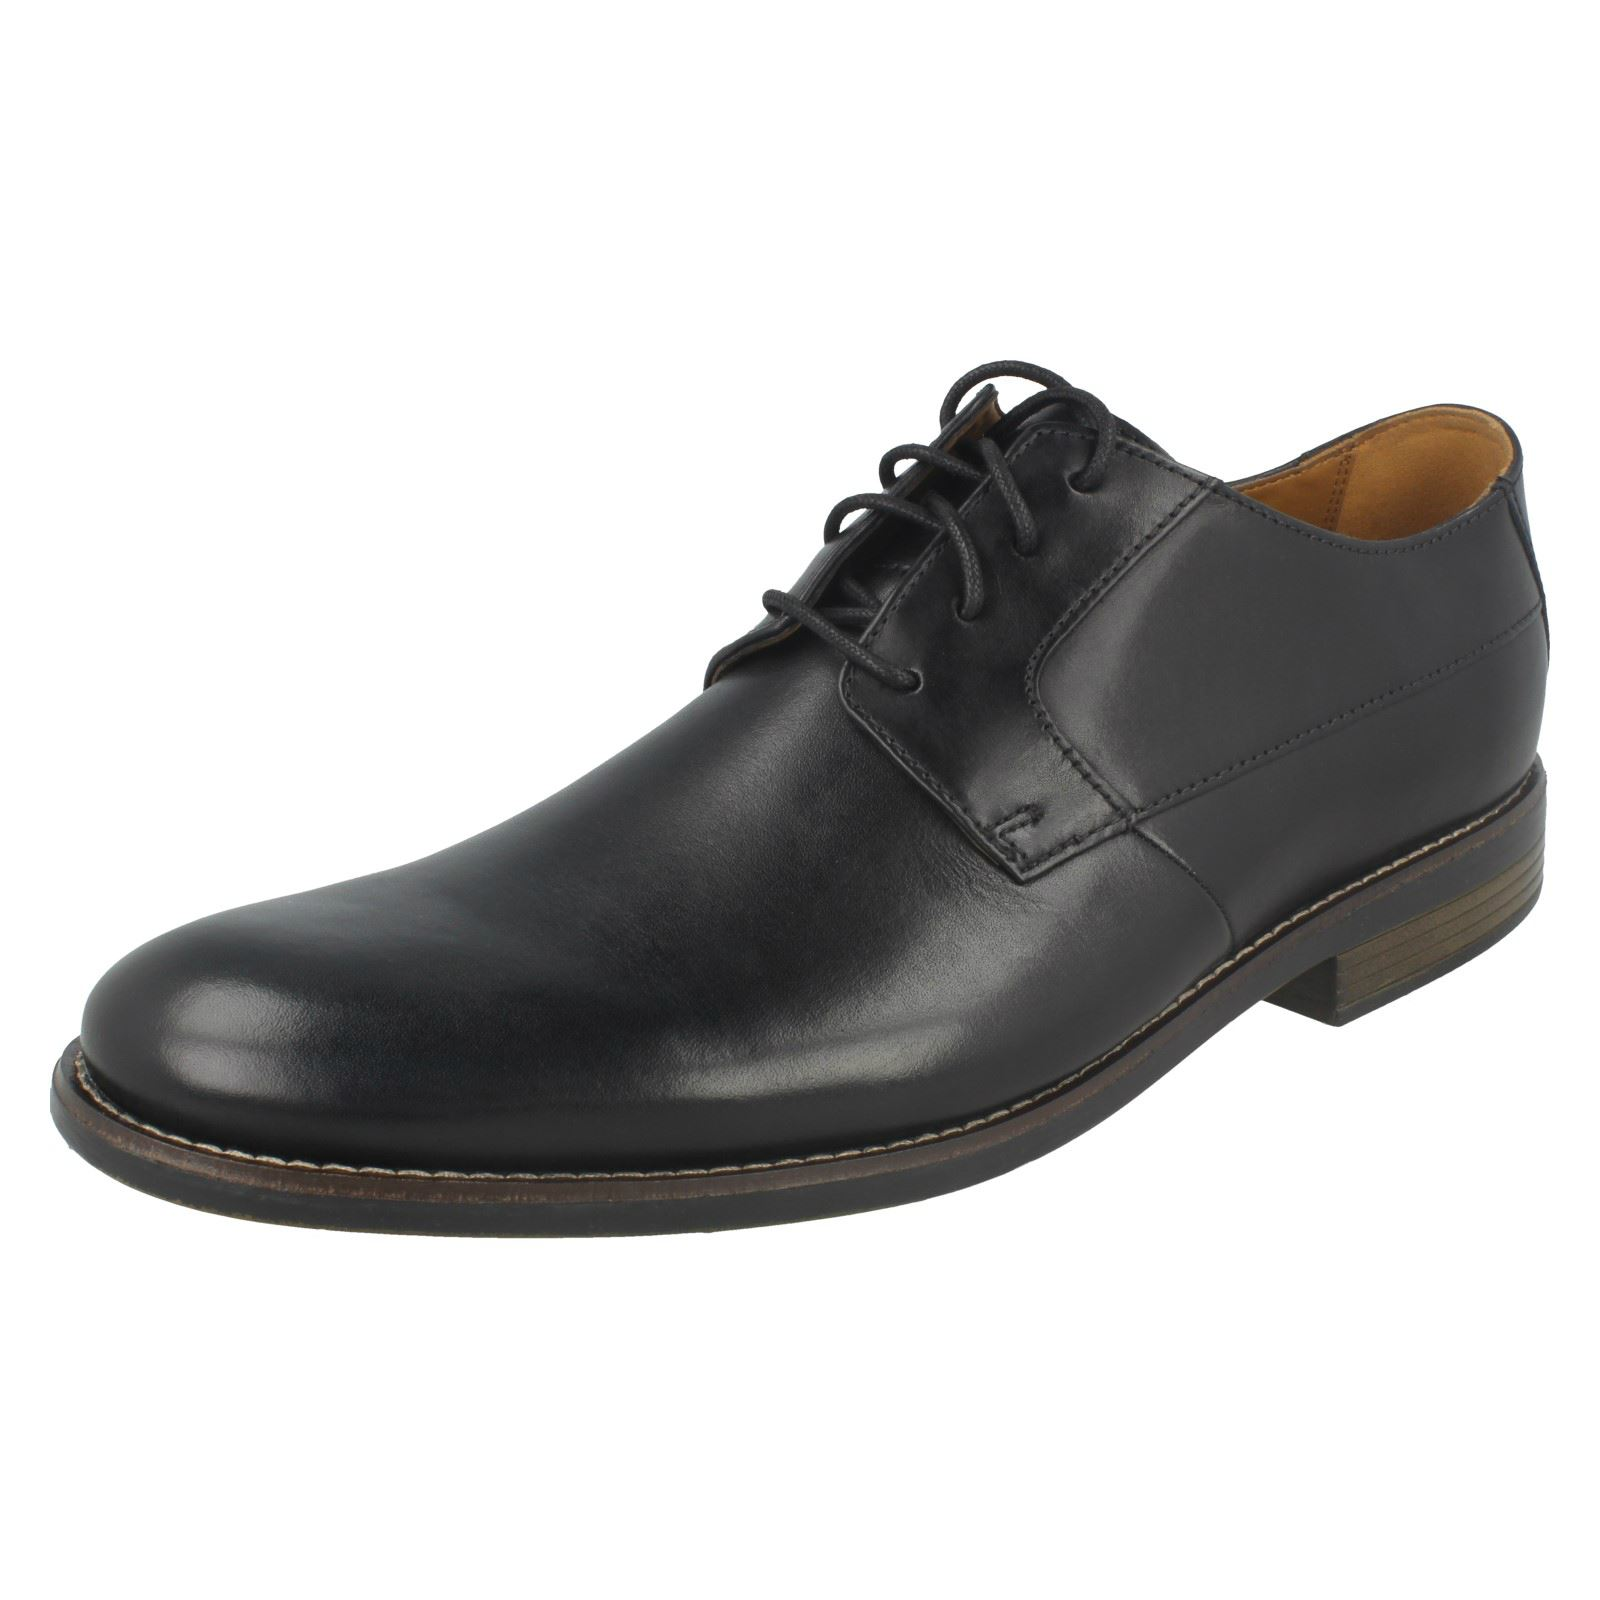 2e1f639fafcb Mens Clarks Formal Lace up Shoes Becken Plain UK 10.5 Black G. About this  product. Picture 1 of 10  Picture 2 of 10 ...